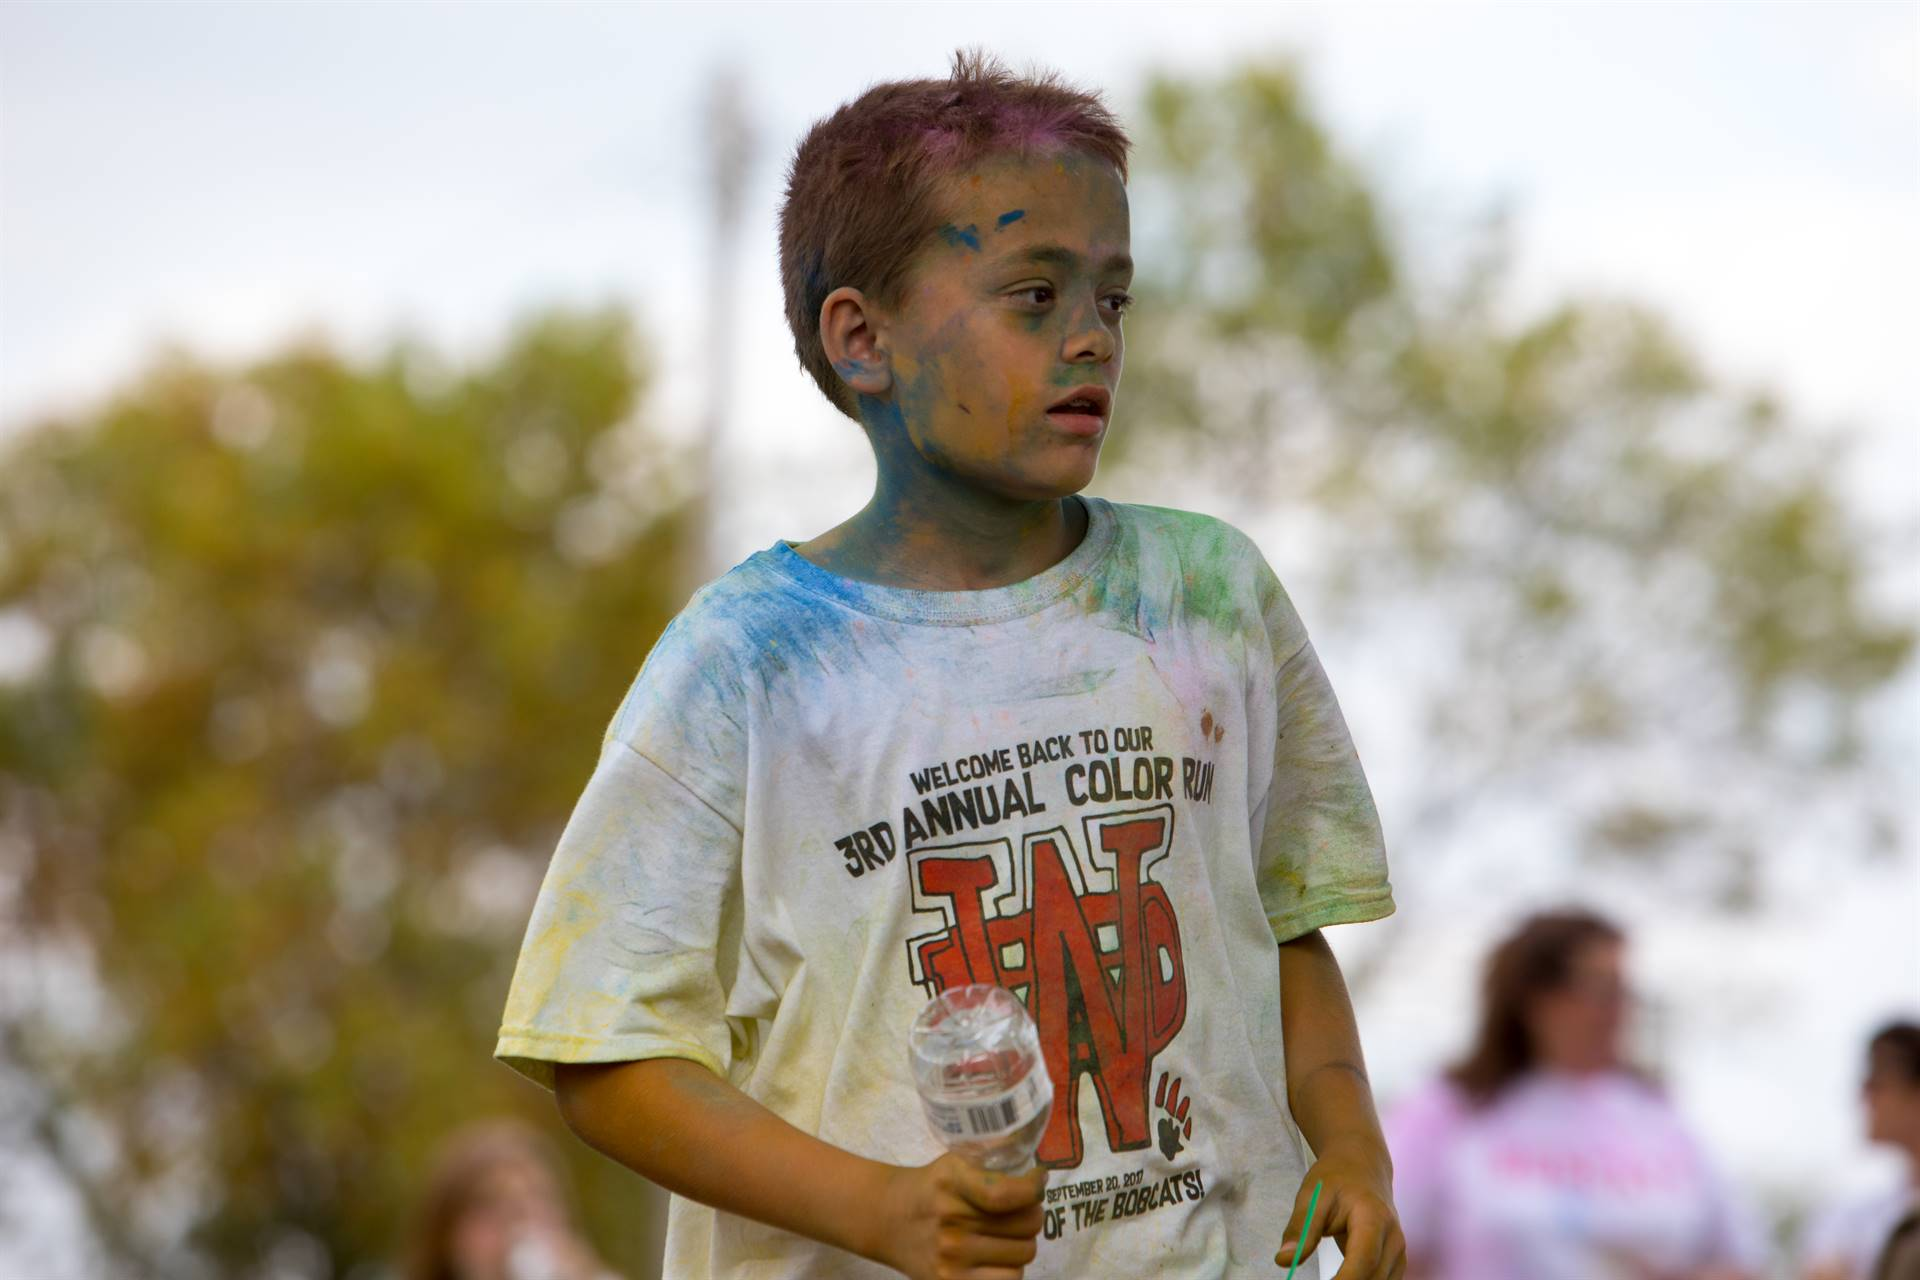 Boy after color run